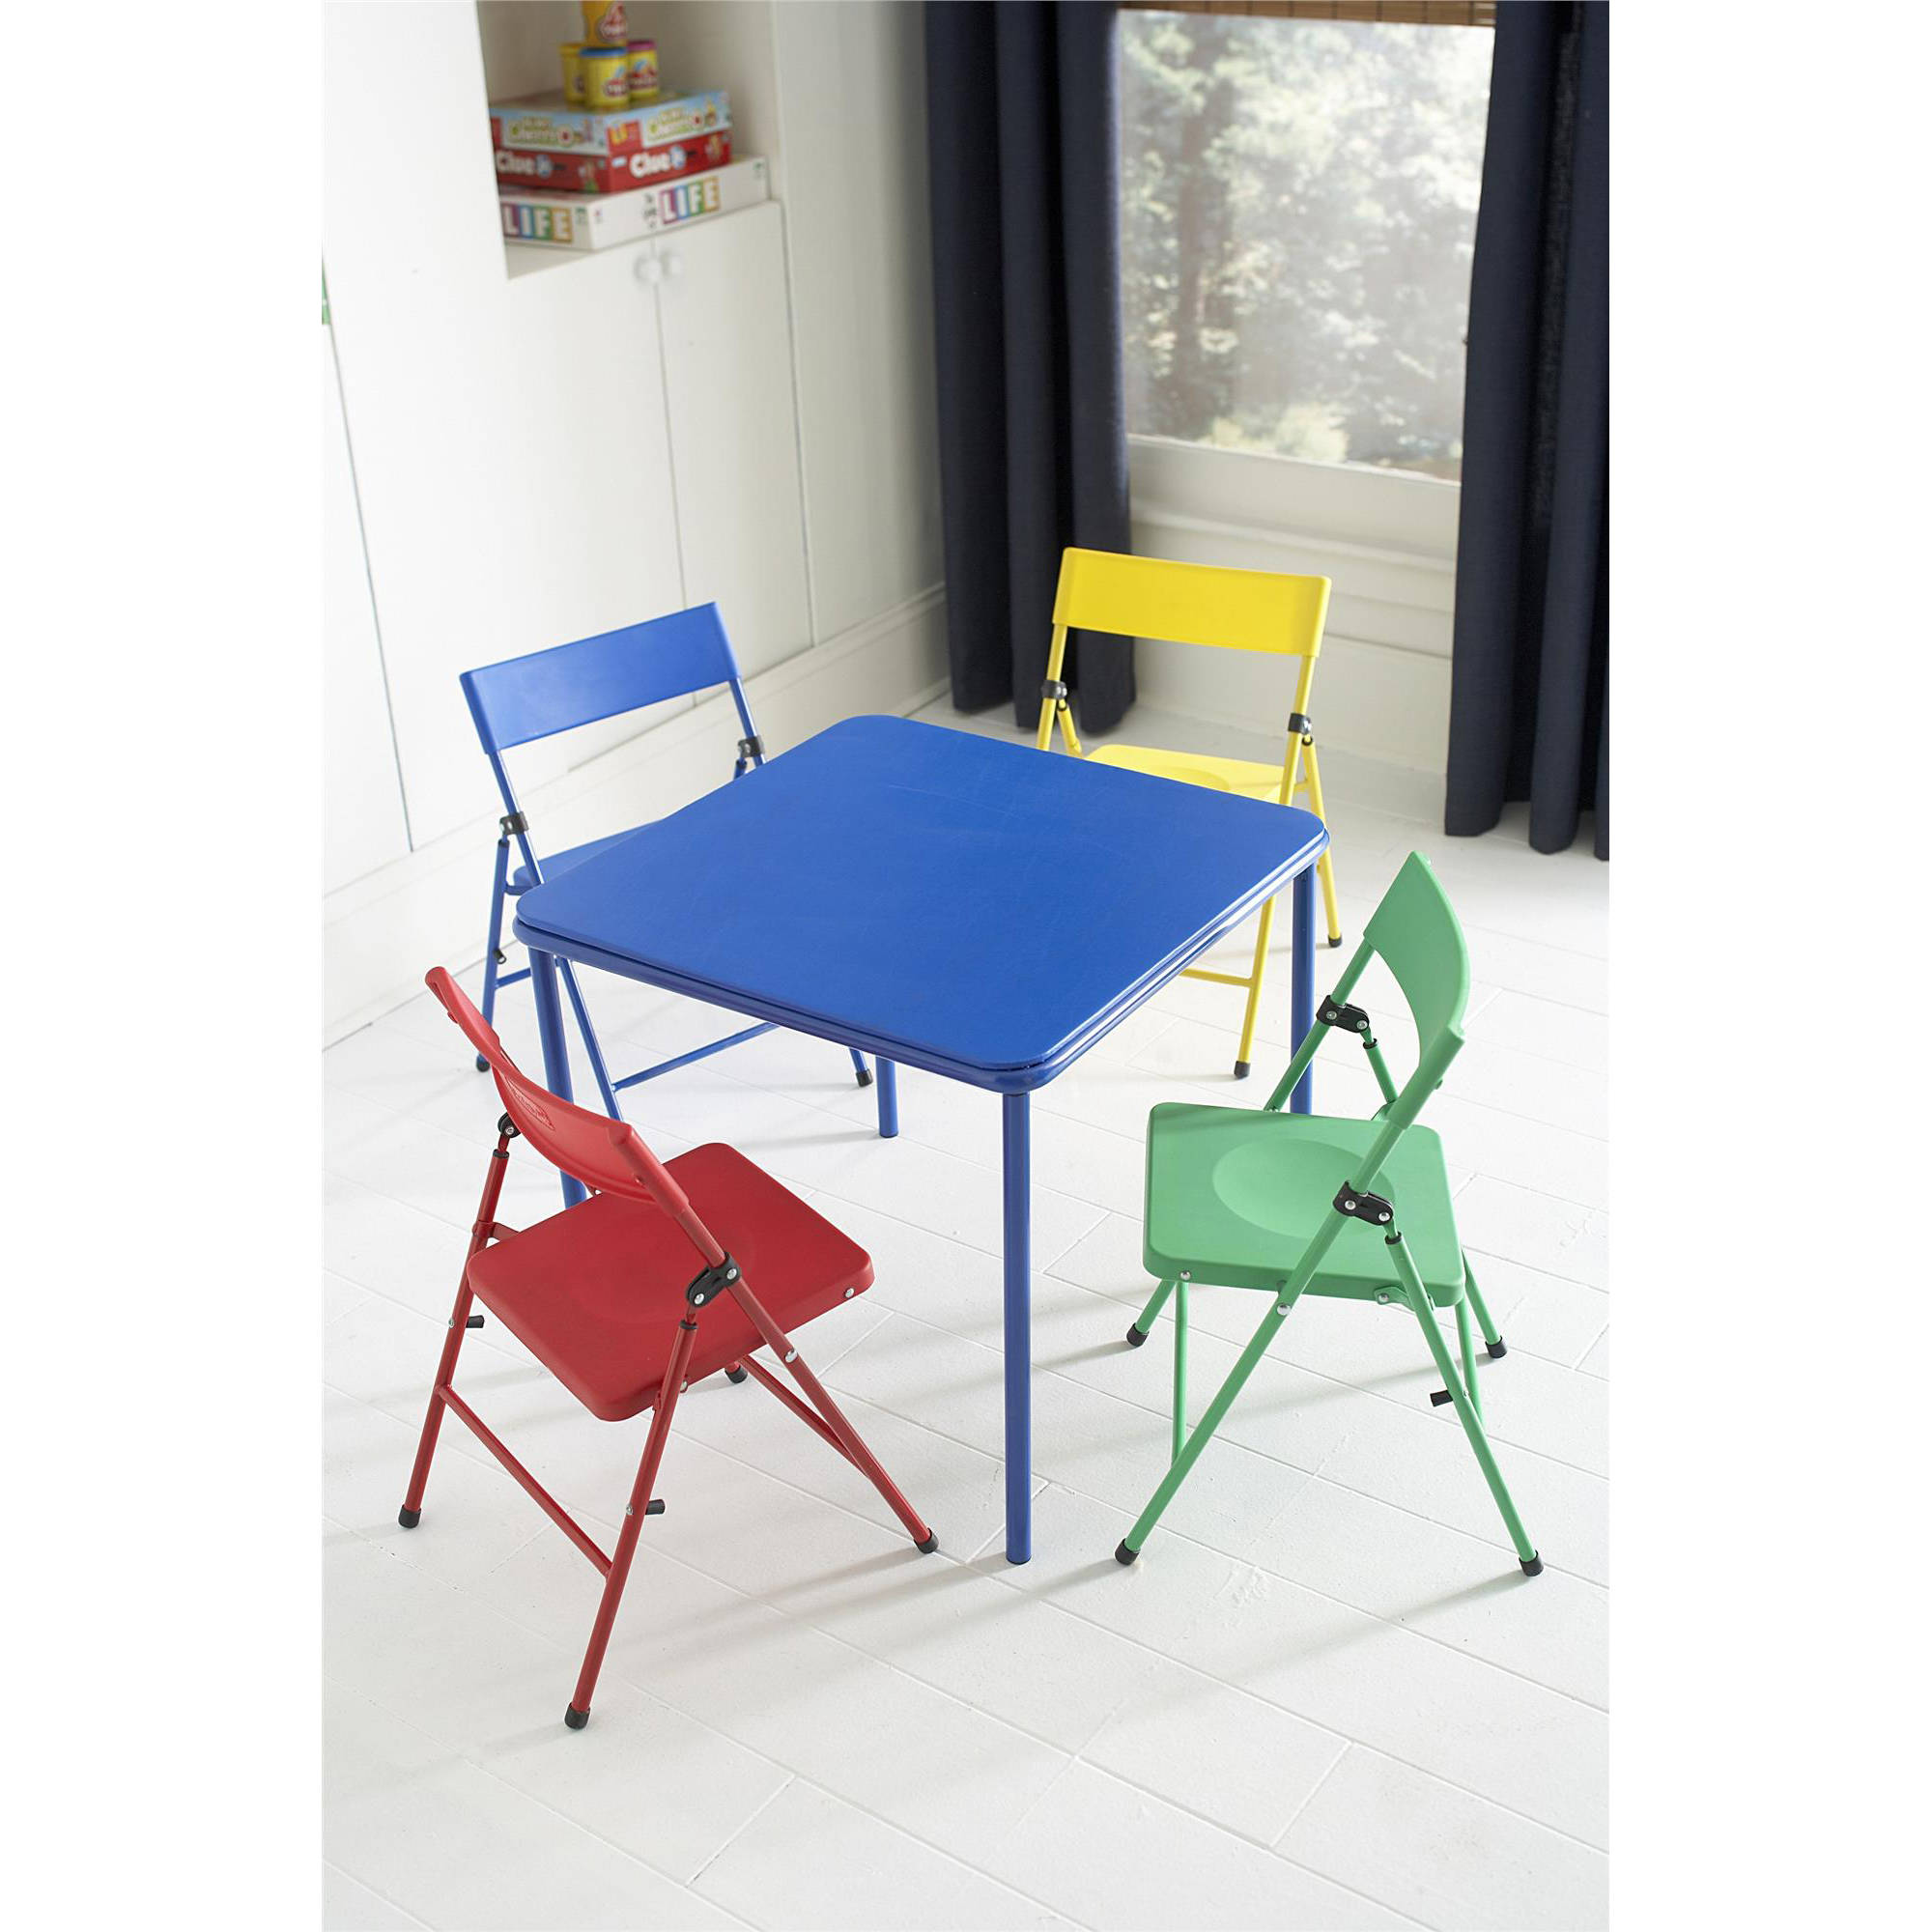 Cosco Kid\u0027s 5 Piece Folding Chair and Table Set  sc 1 st  Walmart.com & Cosco Kid\u0027s 5 Piece Folding Chair and Table Set - Walmart.com